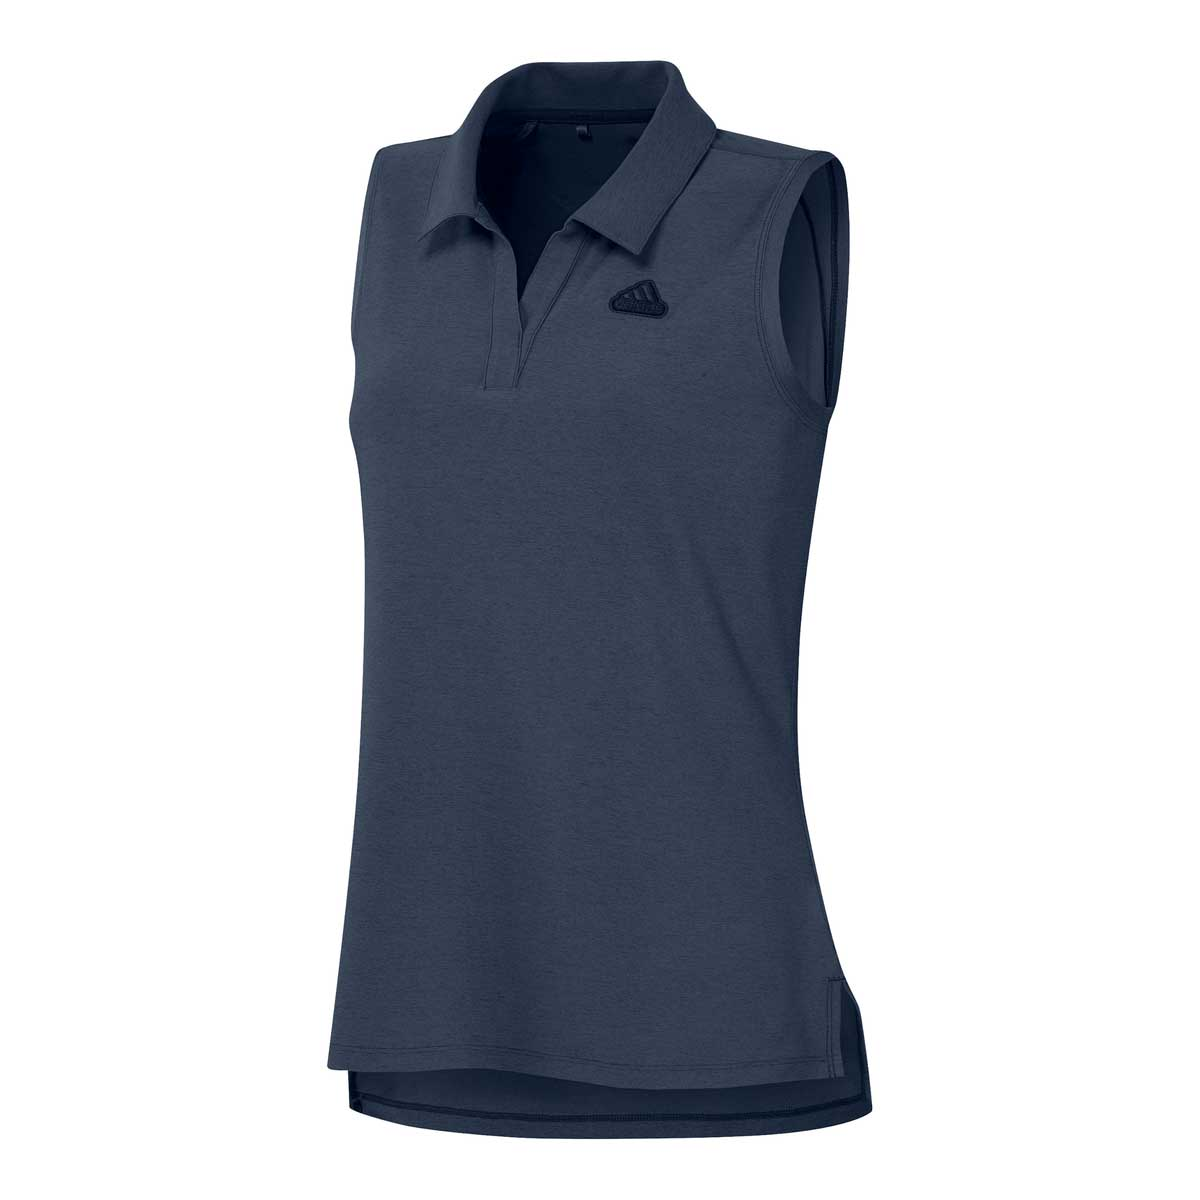 Adidas Women's Go-To Sleeveless Crew Navy Polo